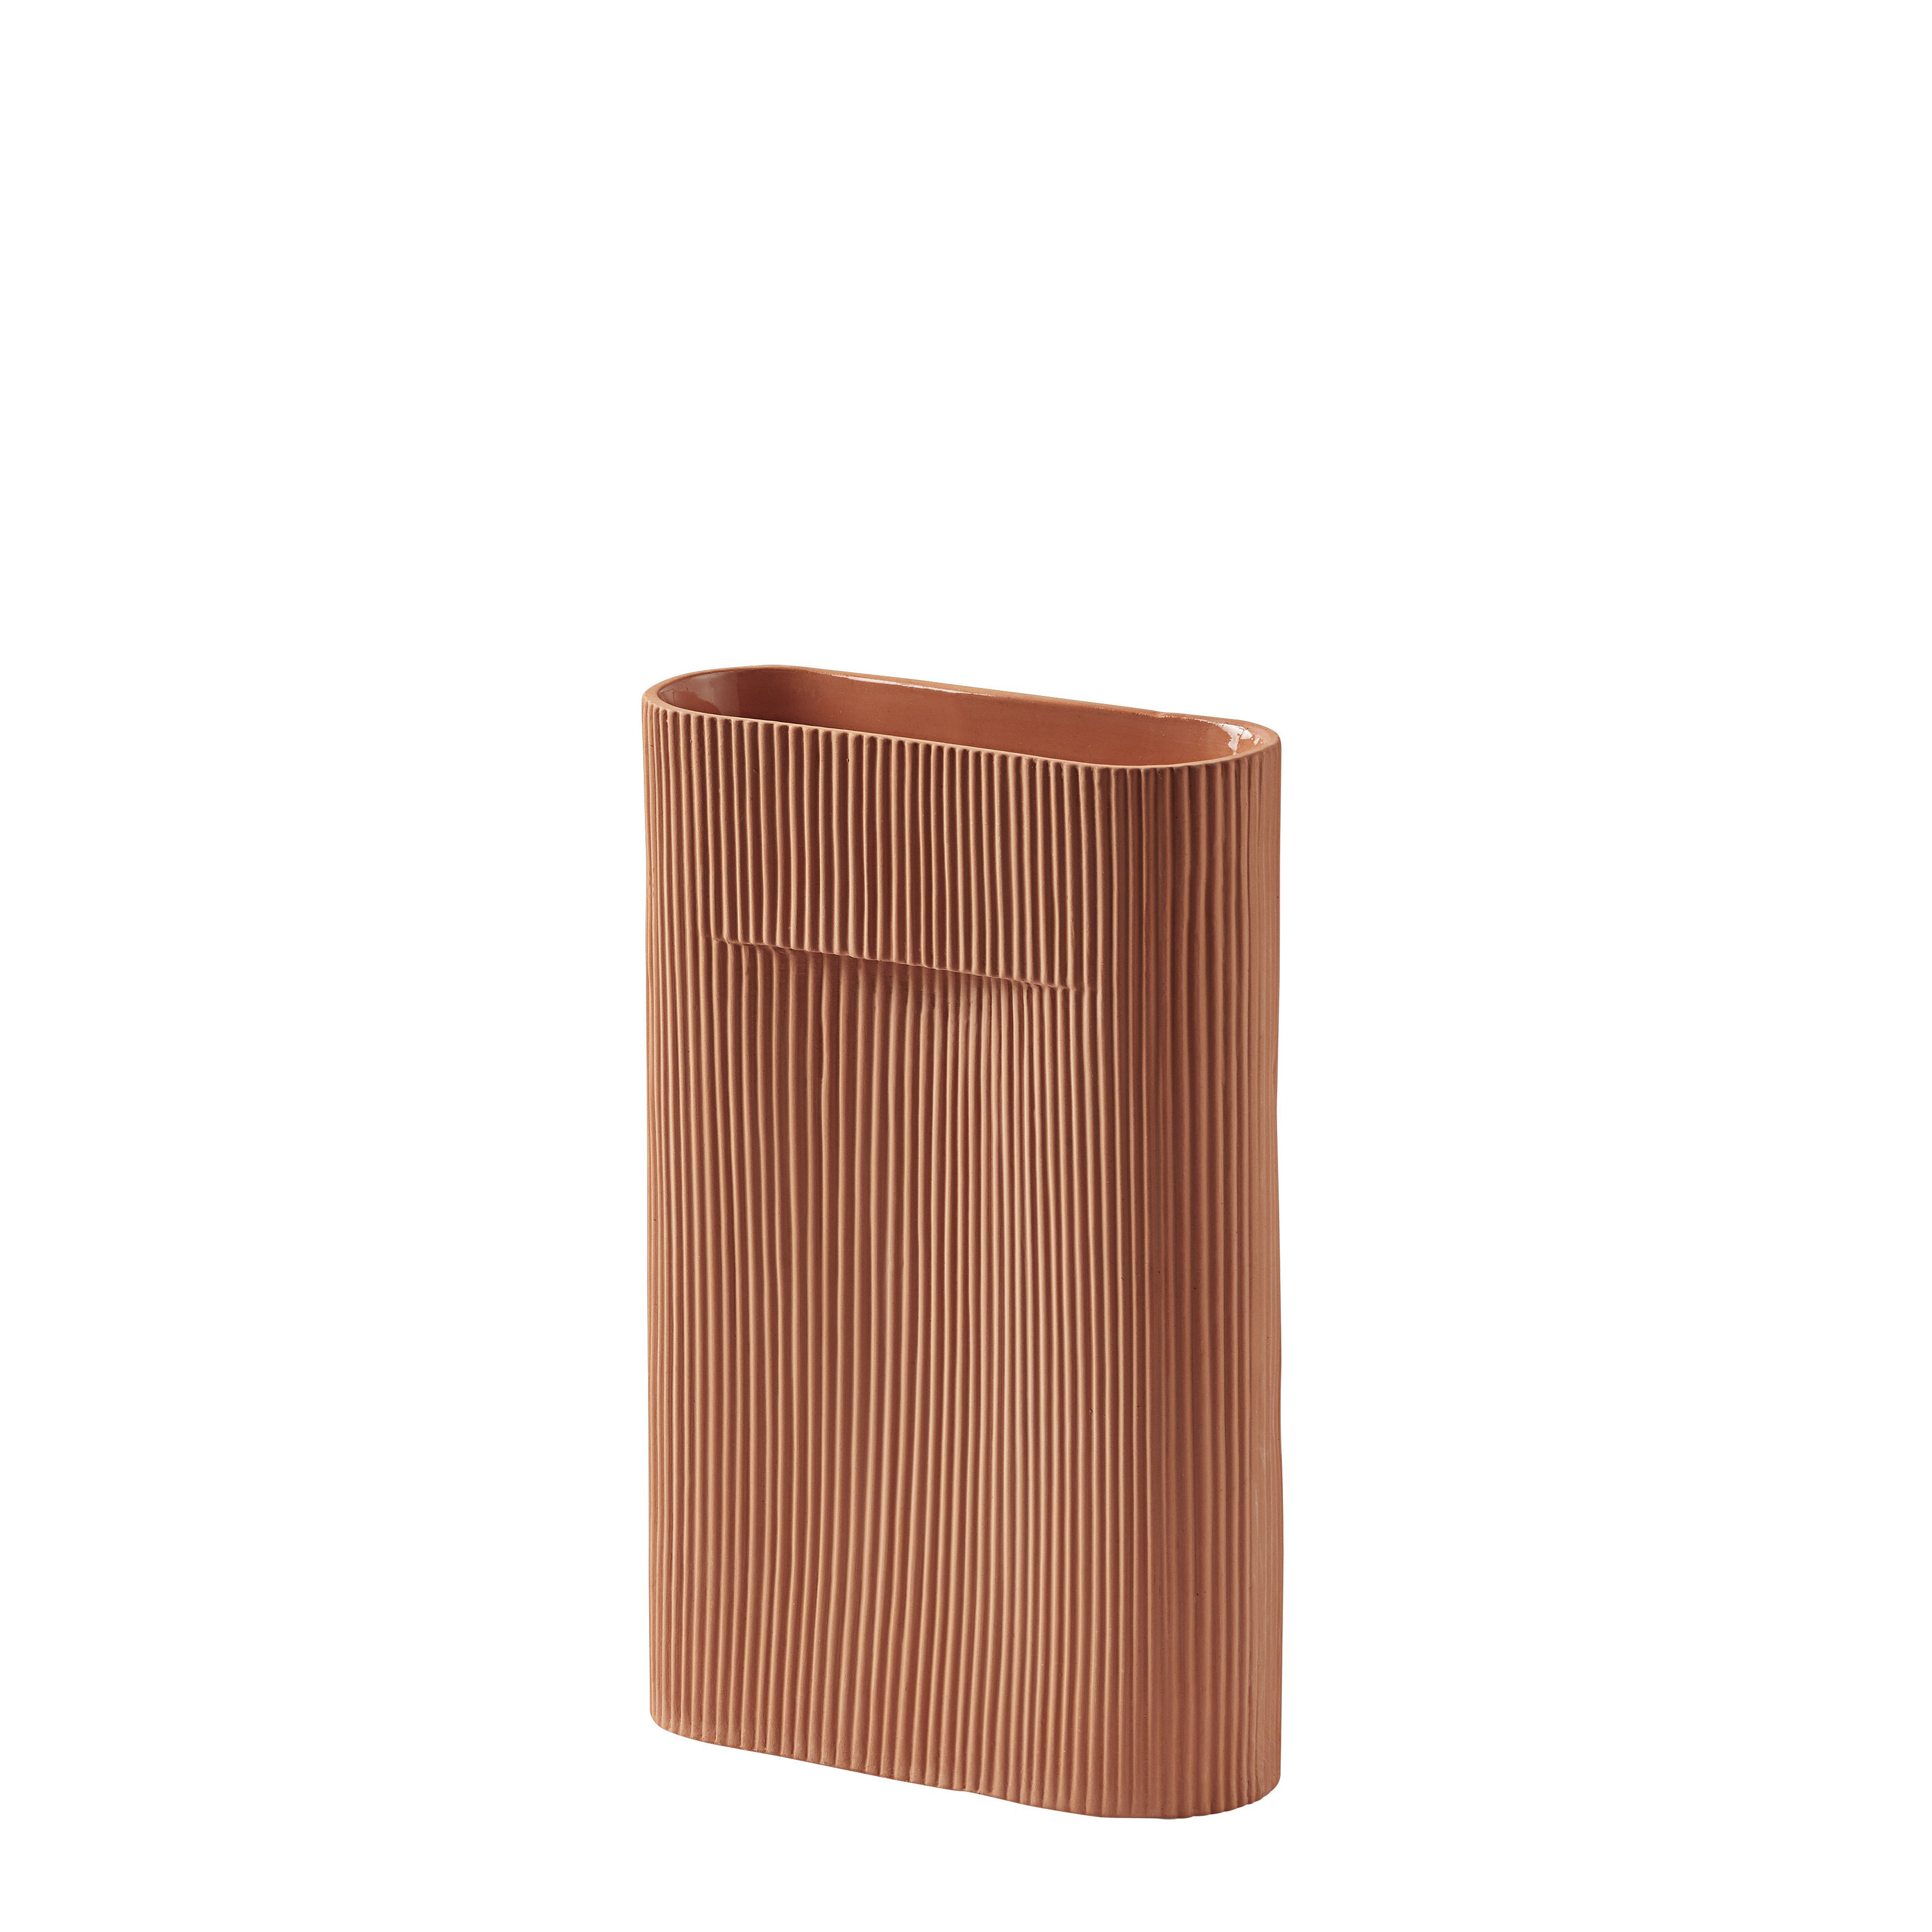 Decoration - Vases - Ridge Small Vase - / H 35 cm by Muuto - Terracotta - Terracotta